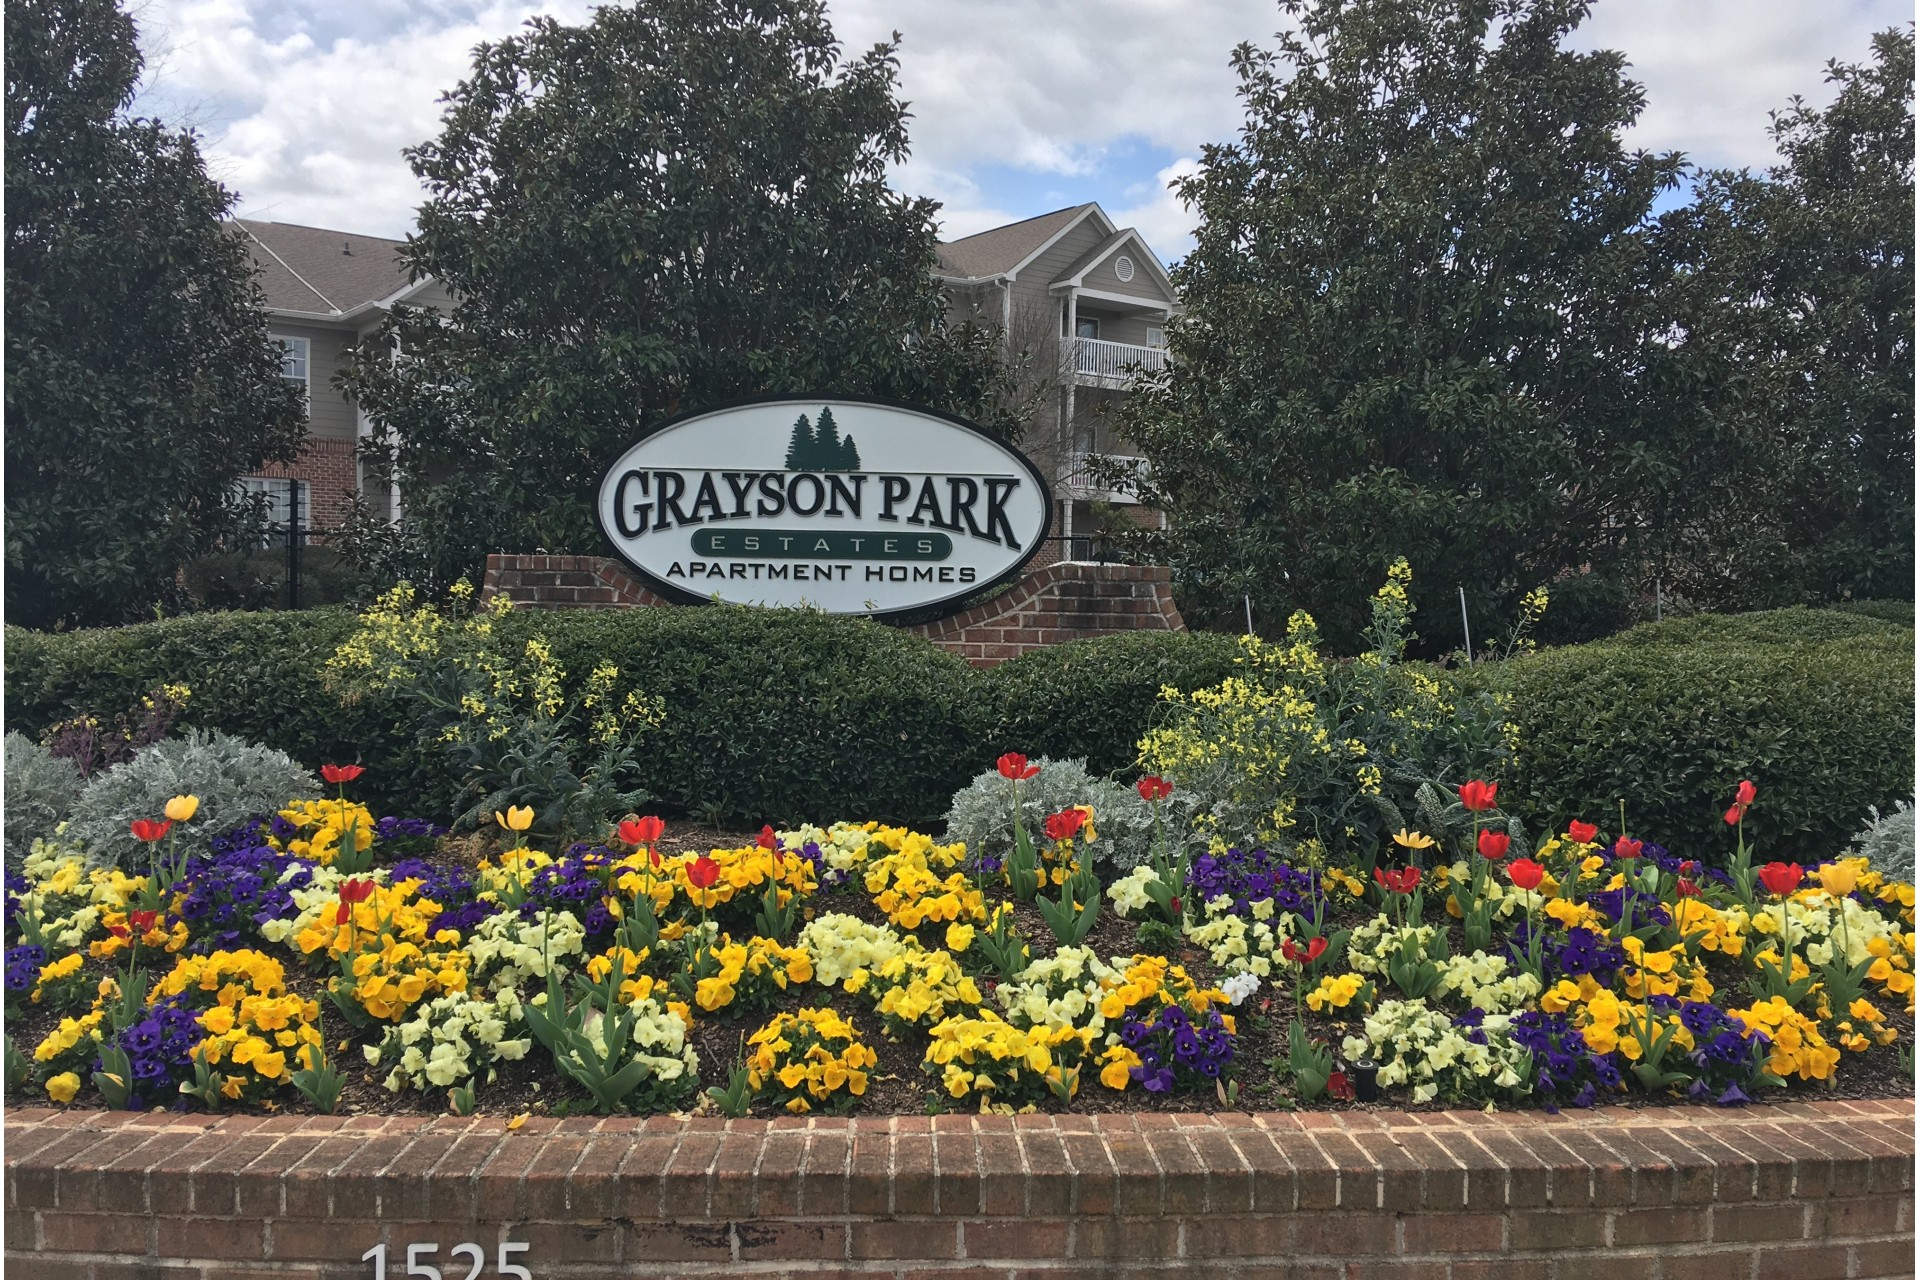 Grayson Park Estates